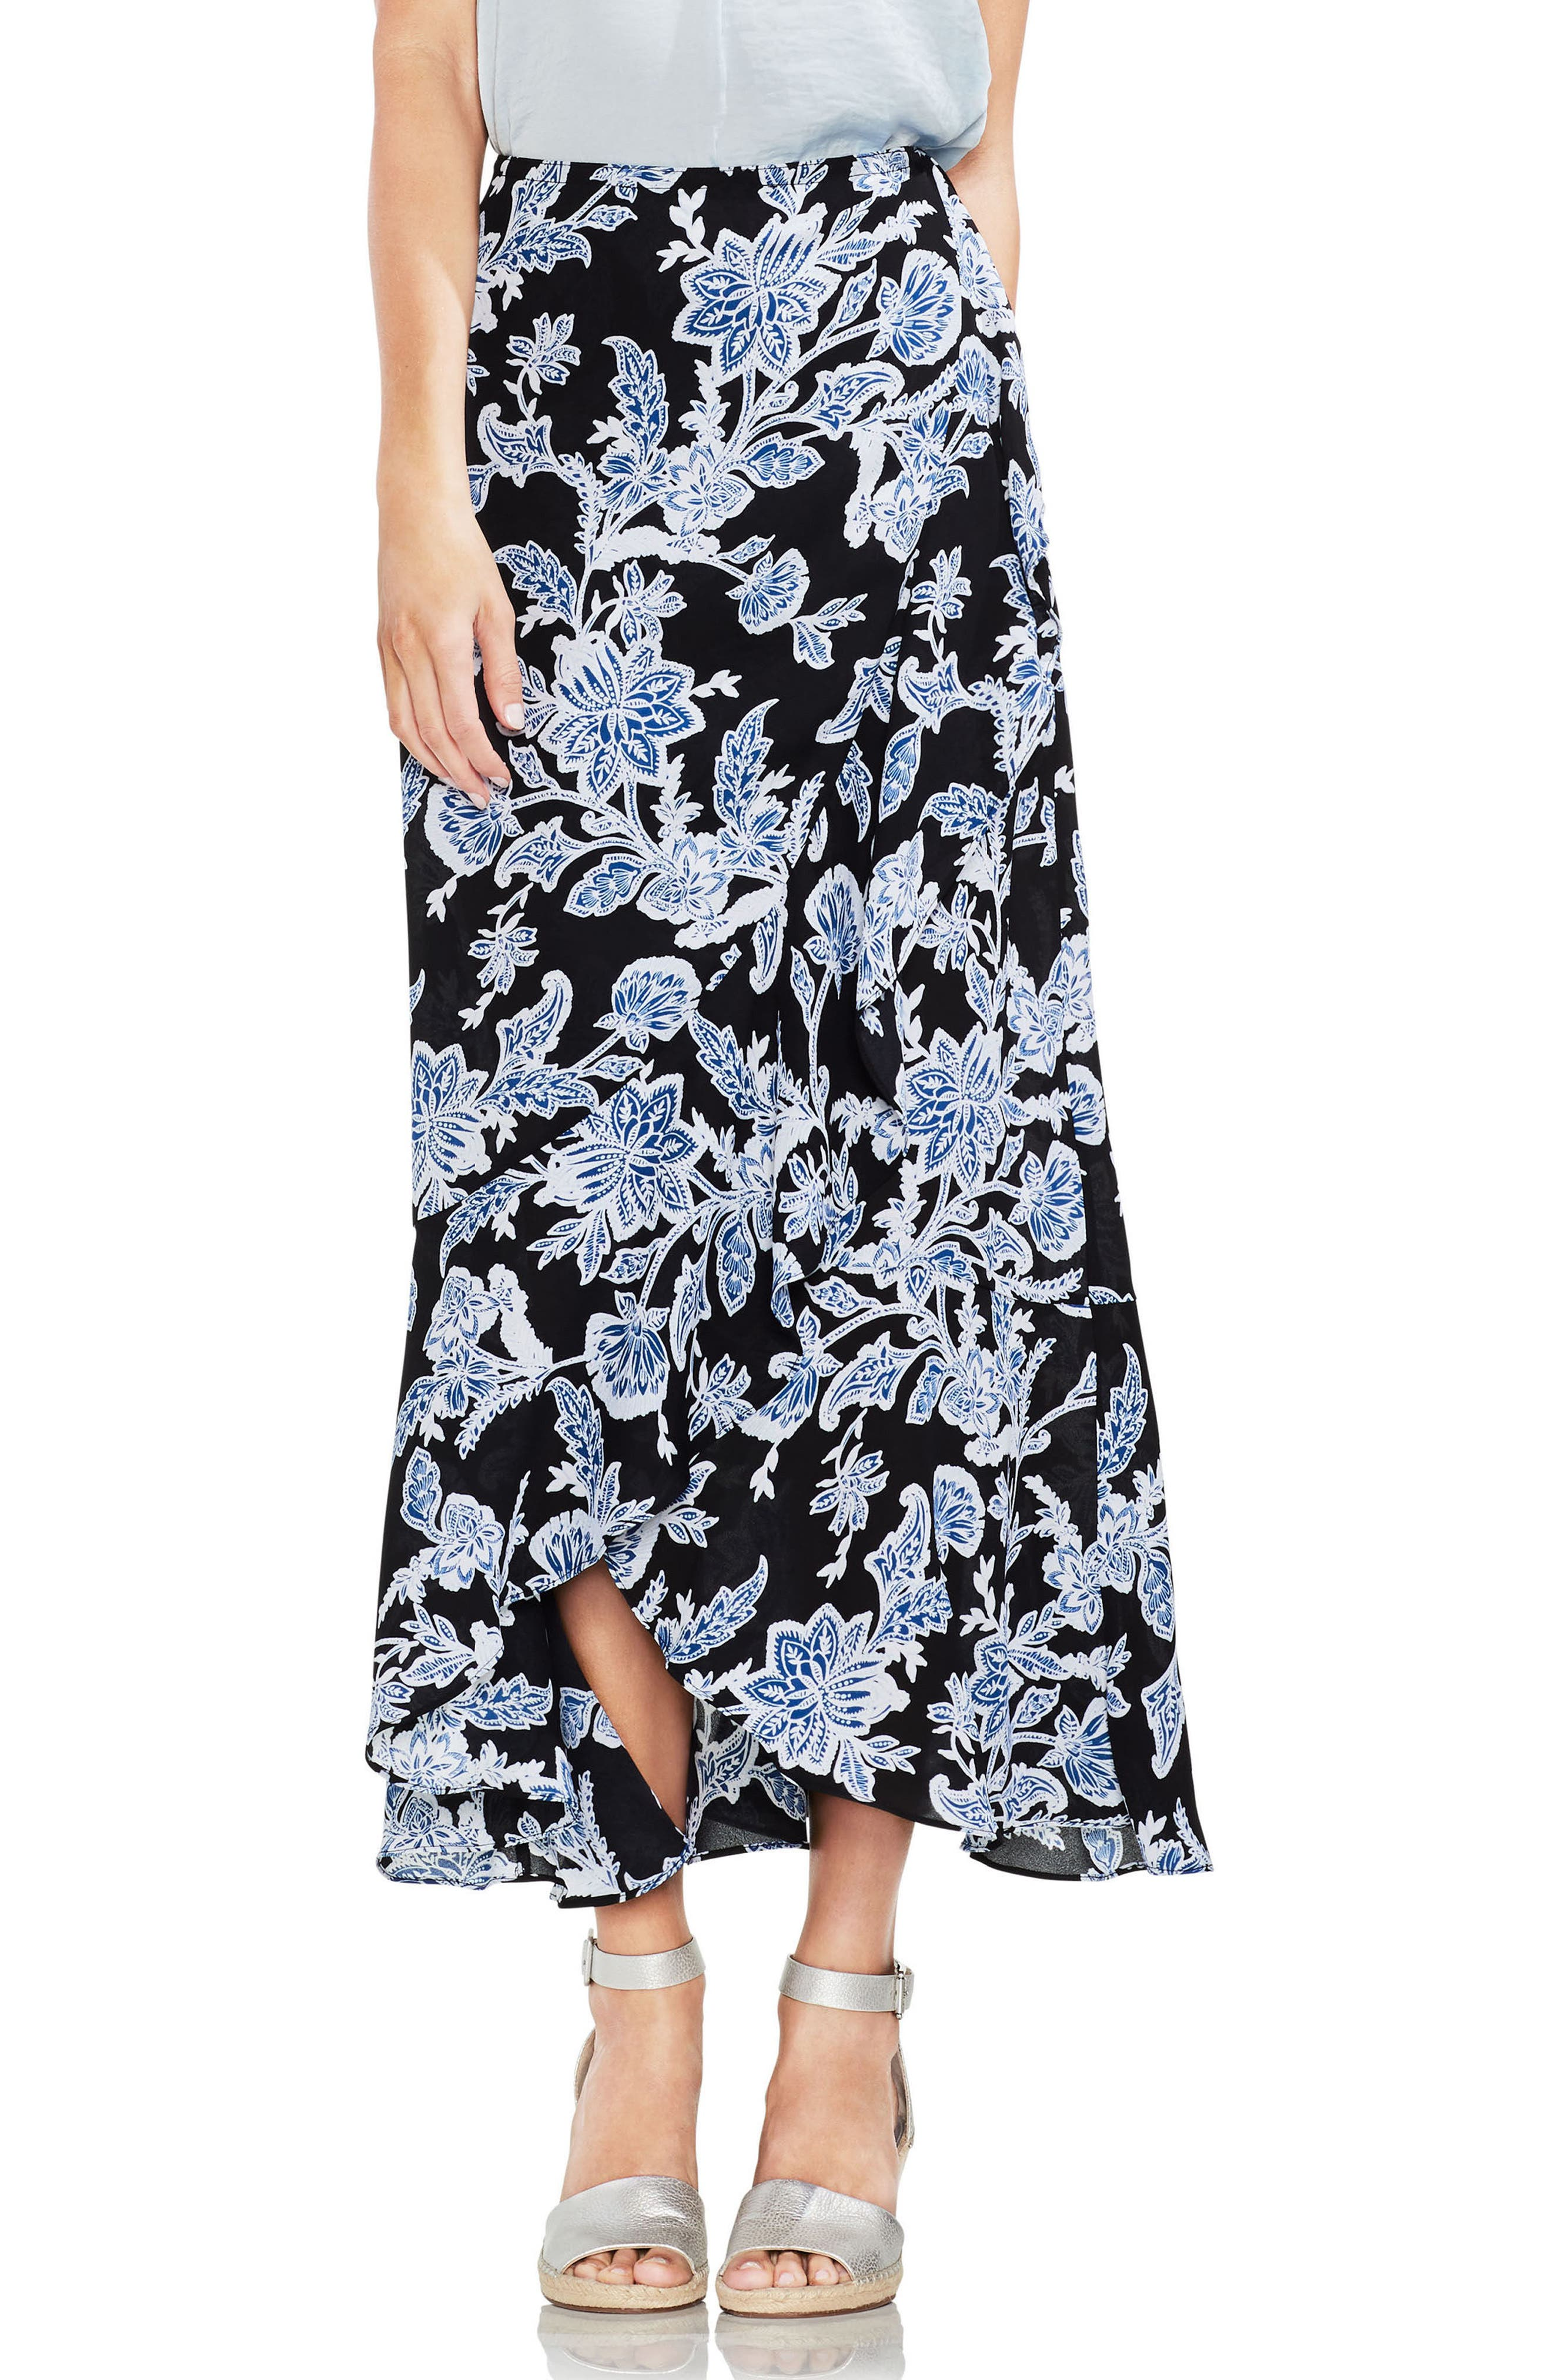 Ruffled Faux Wrap Floral Skirt,                             Main thumbnail 1, color,                             001